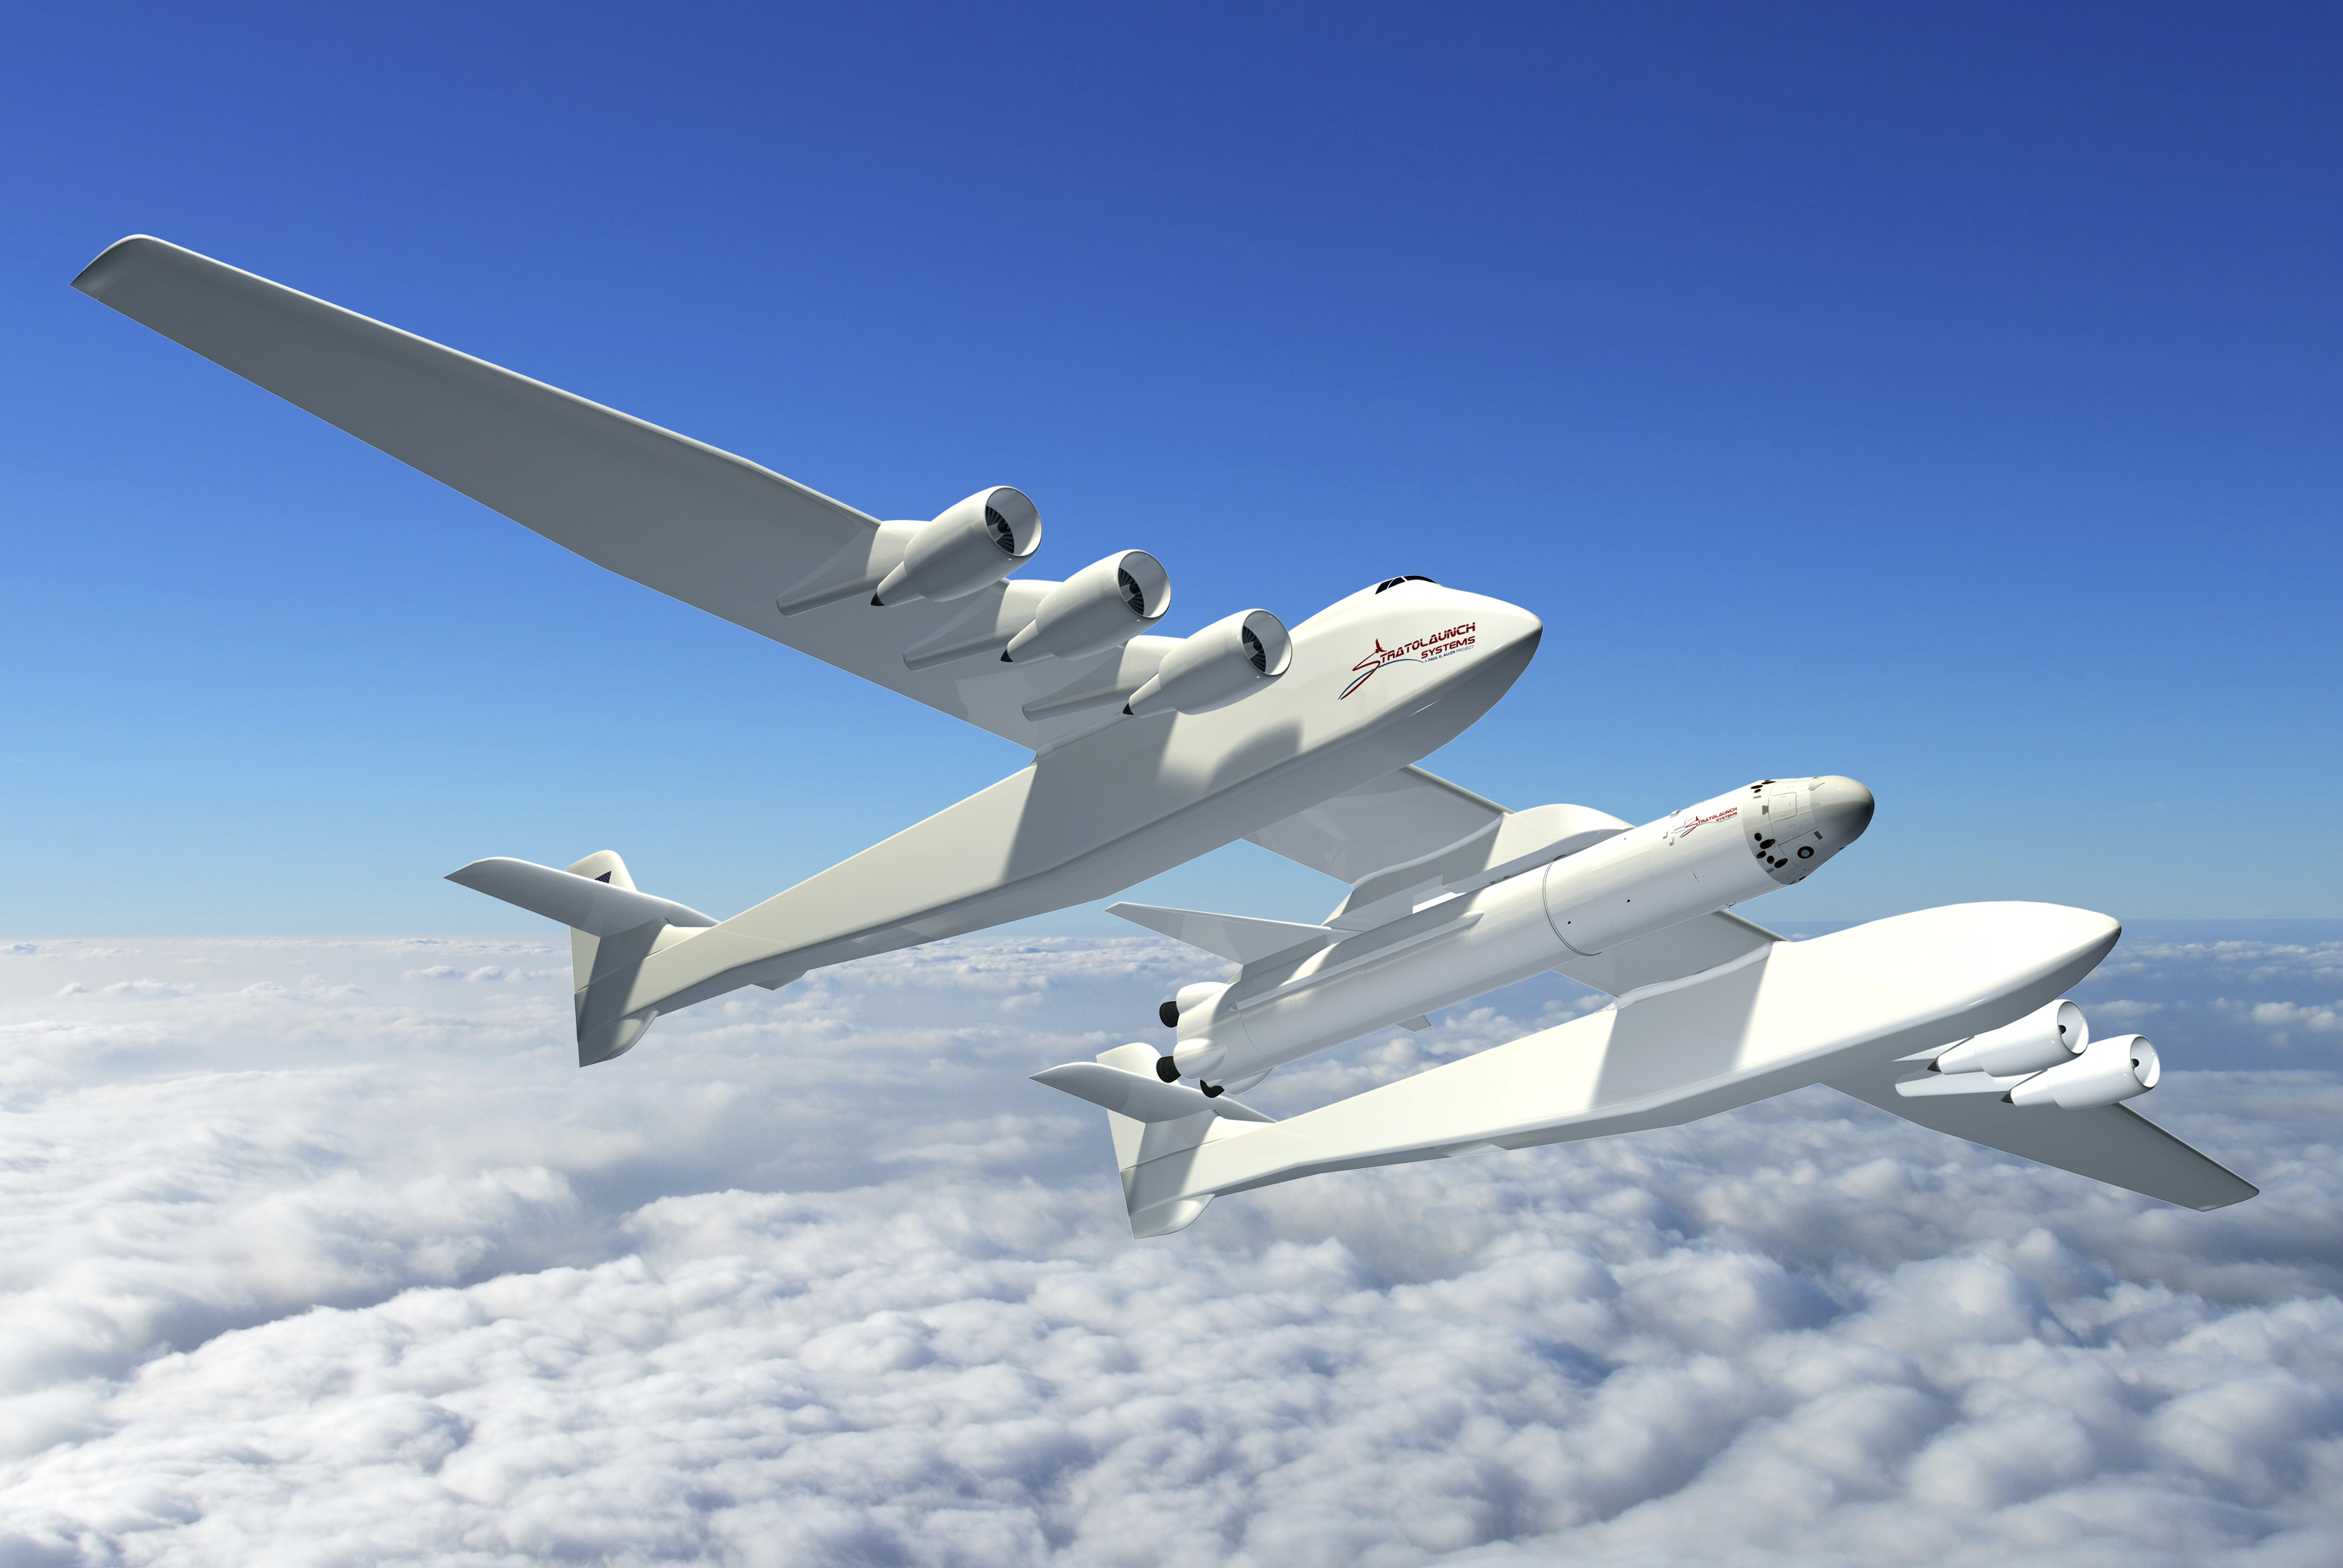 Orbital Sciences Replaces SpaceX on Stratolaunch Project